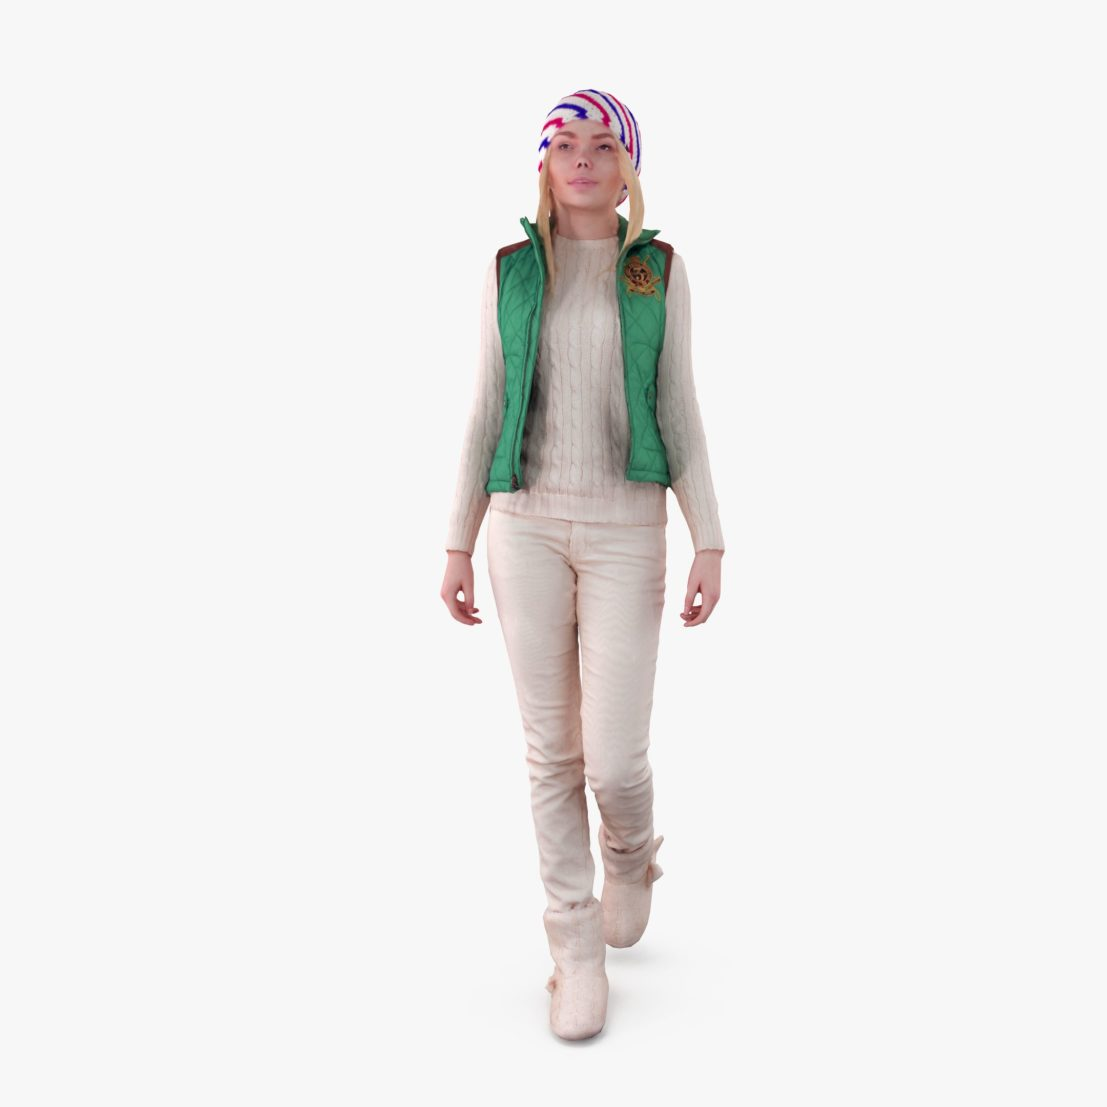 Young City Girl 3D Model | 3DTree Scanning Studio